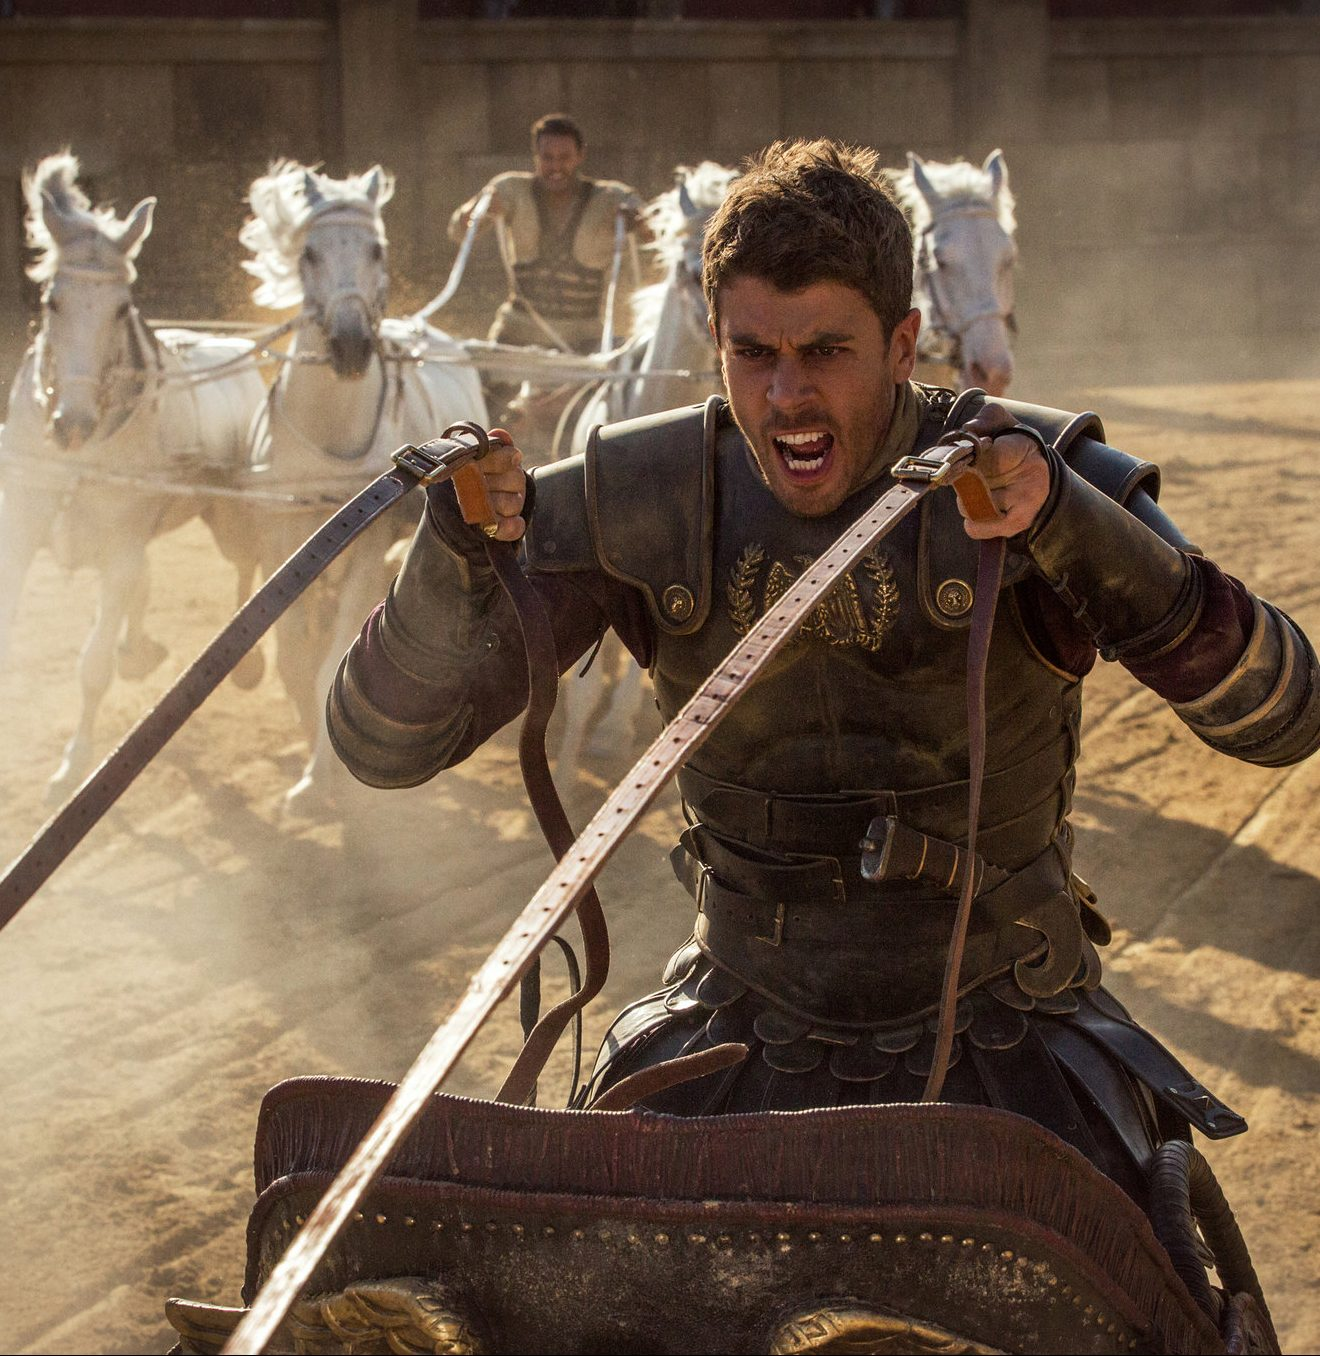 movies 08192016 benhur superJumbo e1583156909658 10 Remakes Even Better Than The Original - And 10 That Disappointed